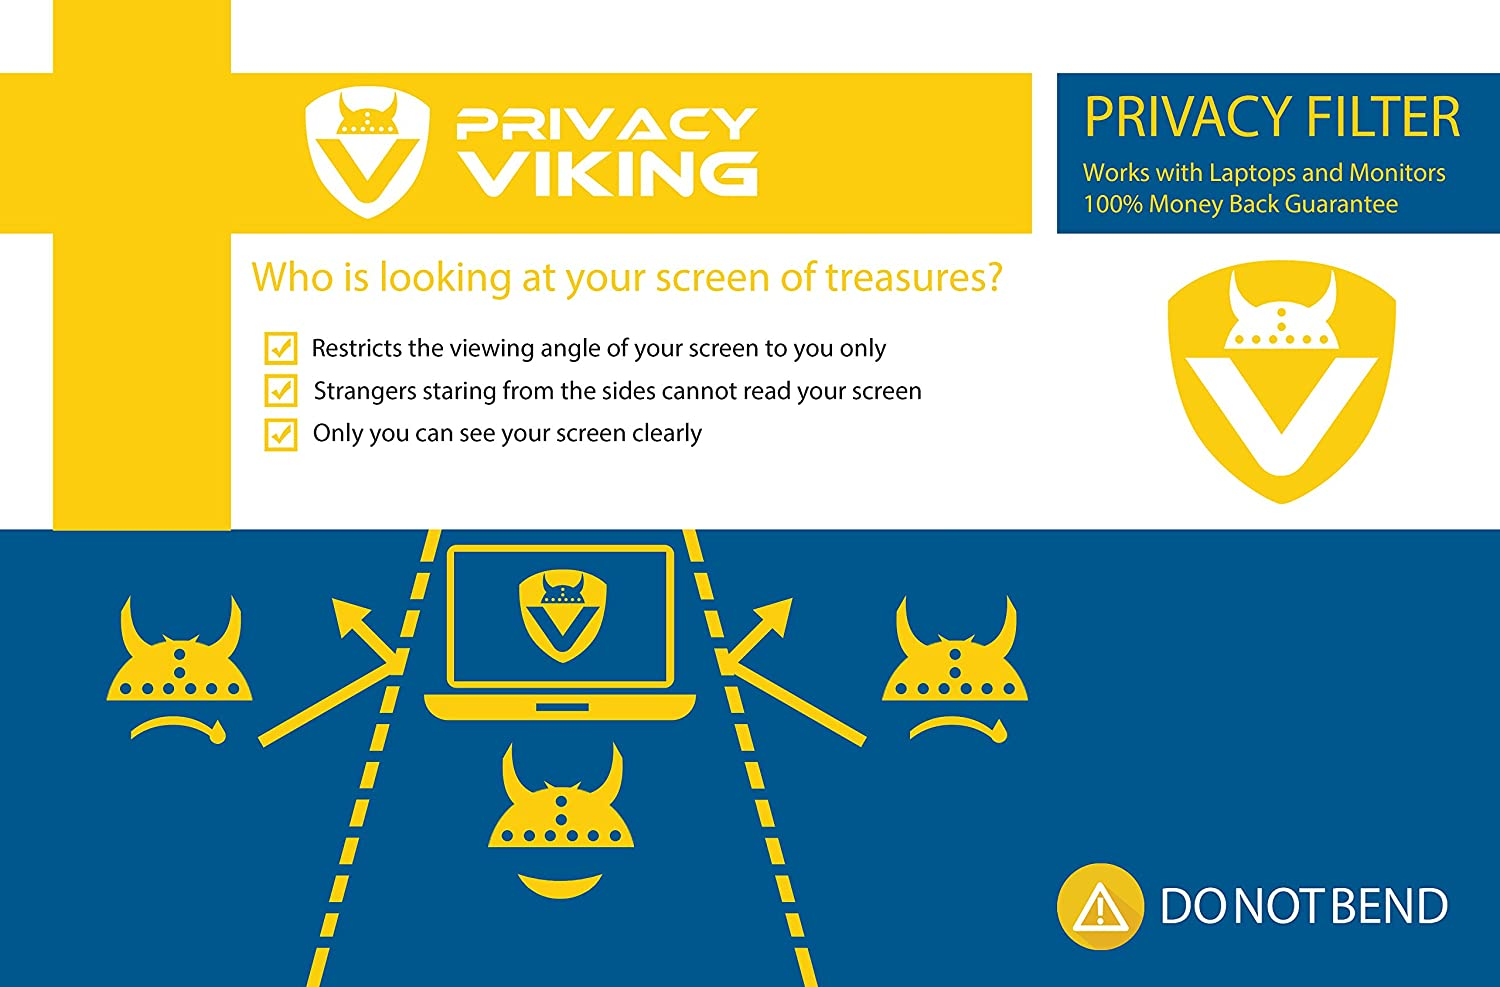 PrivacyViking Privacy Filter Privacy Screen for Monitors and laptops (15.0C3B)